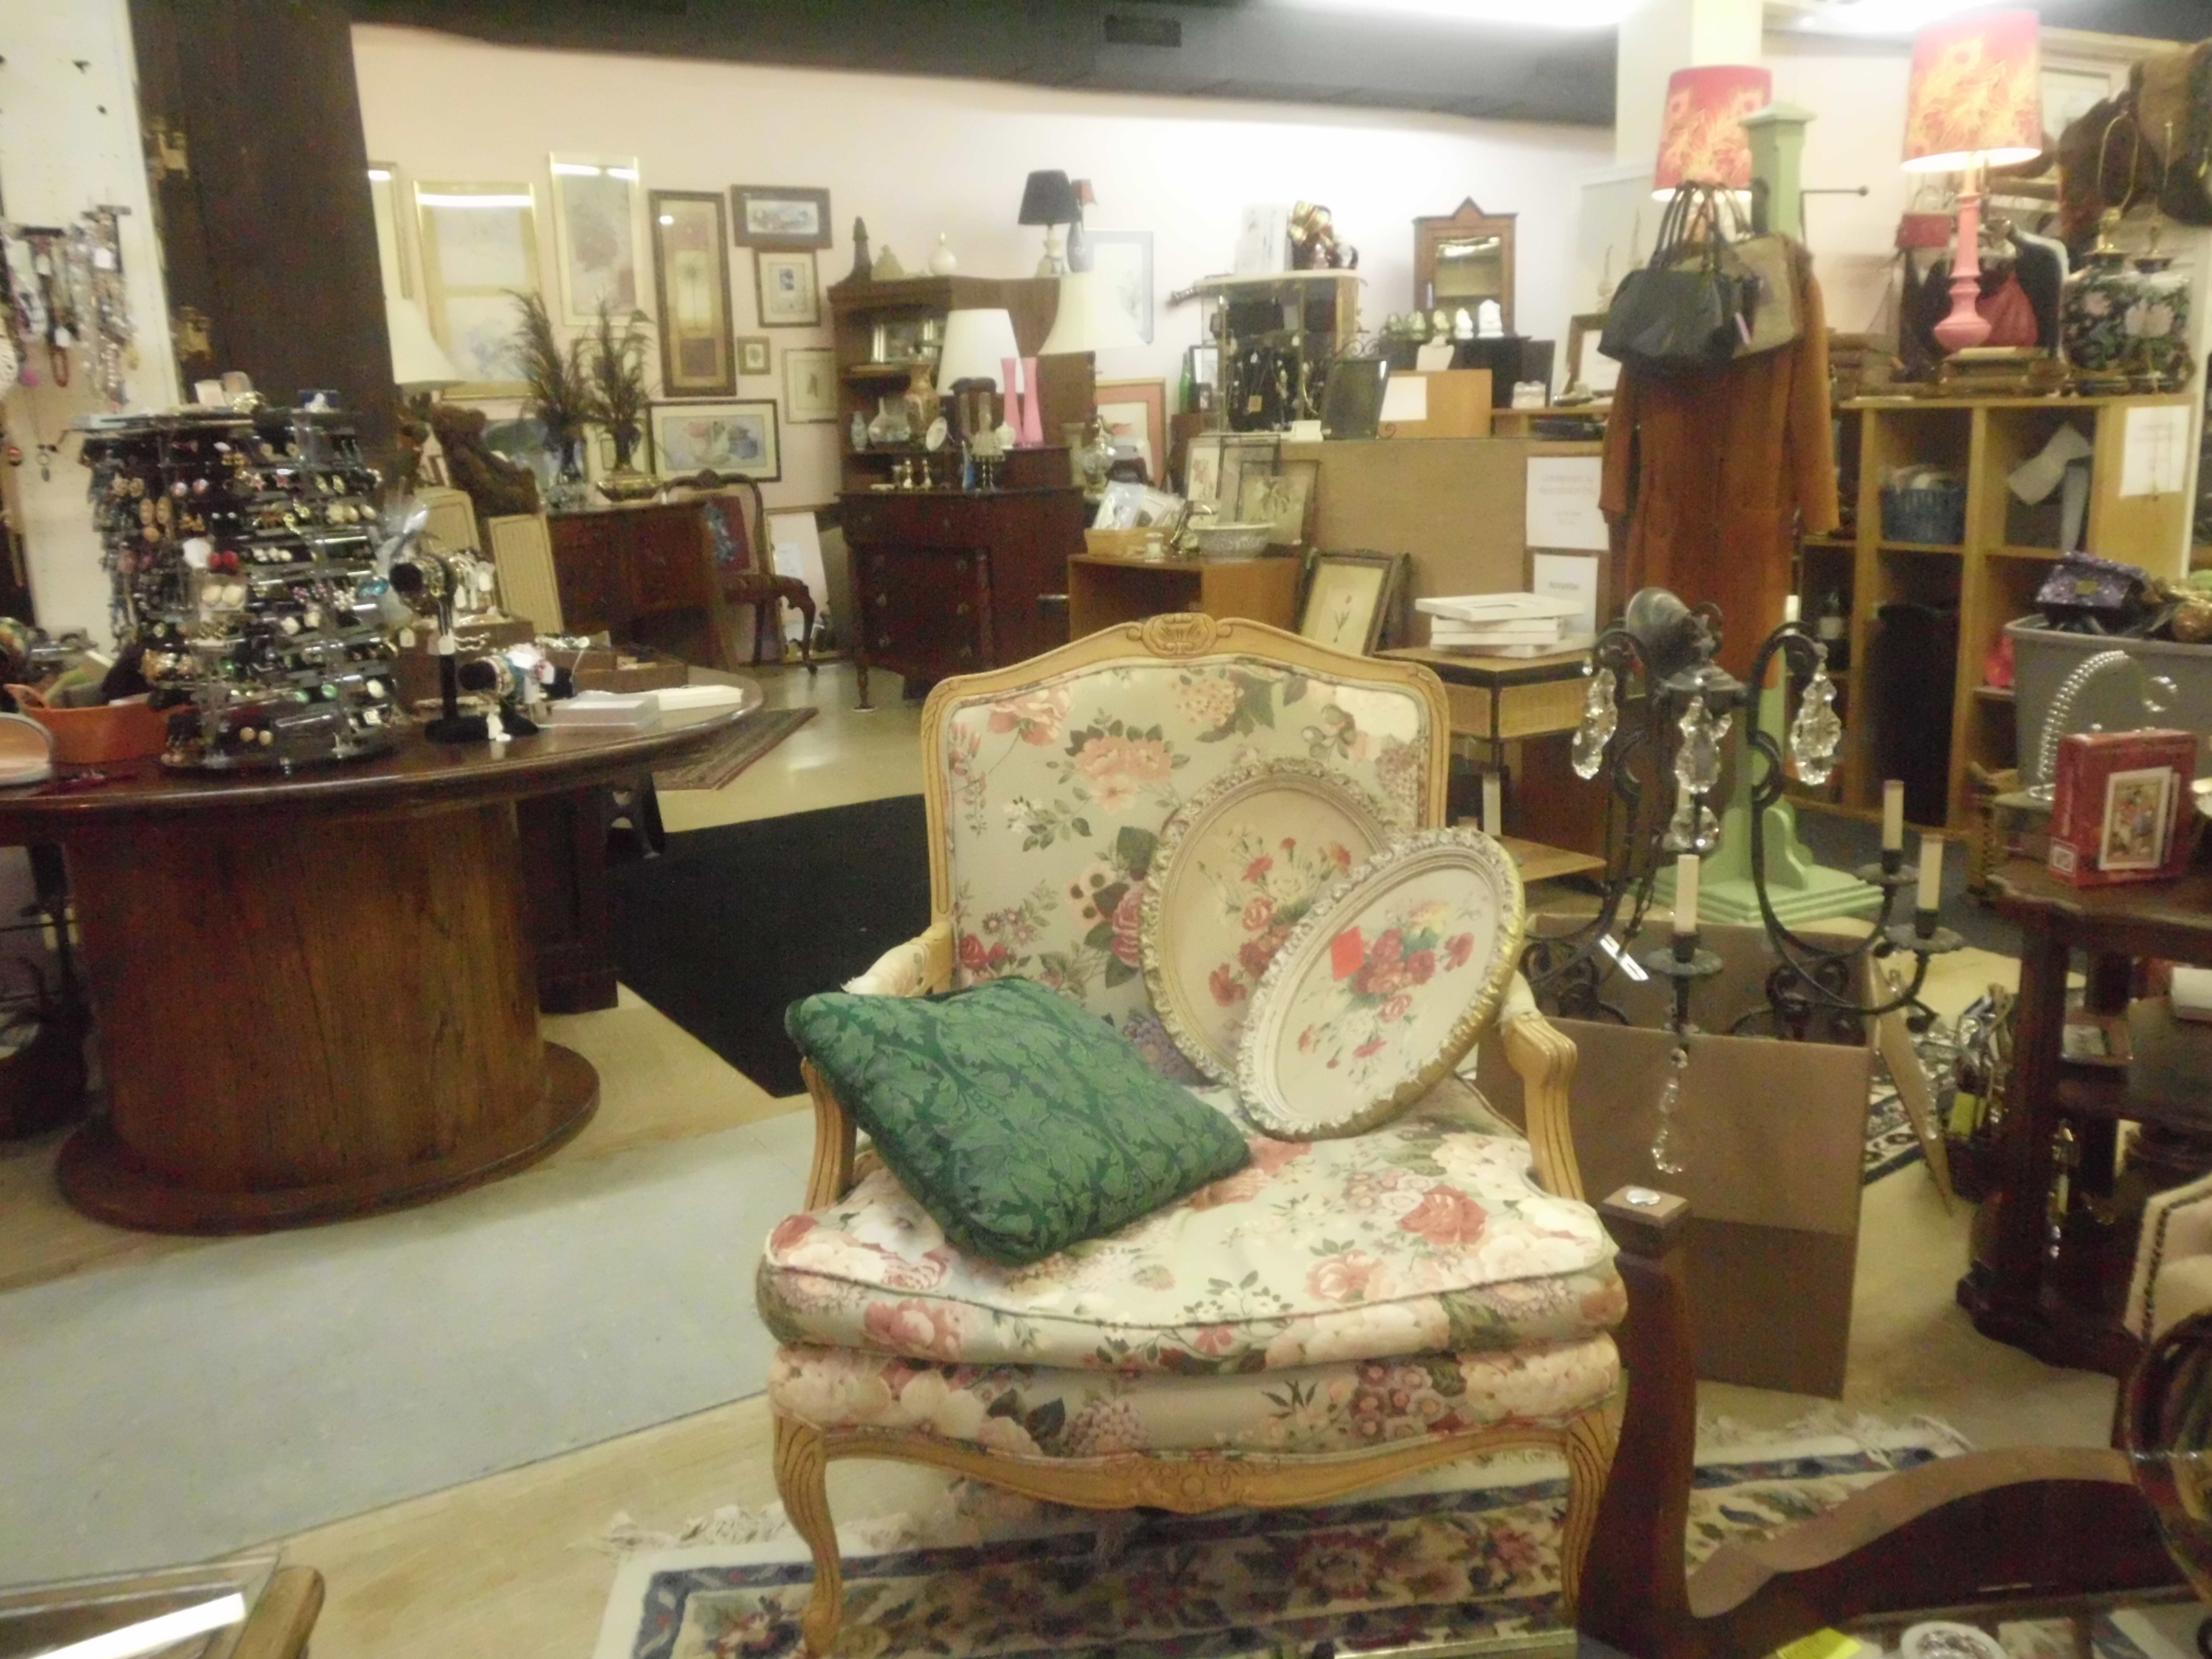 Our Shop Is A Treasure Box Full Of Slightly Used Clothing, Accessories,  Furniture, Household Items And A Knowledgeable Staff Ready To Assist You.